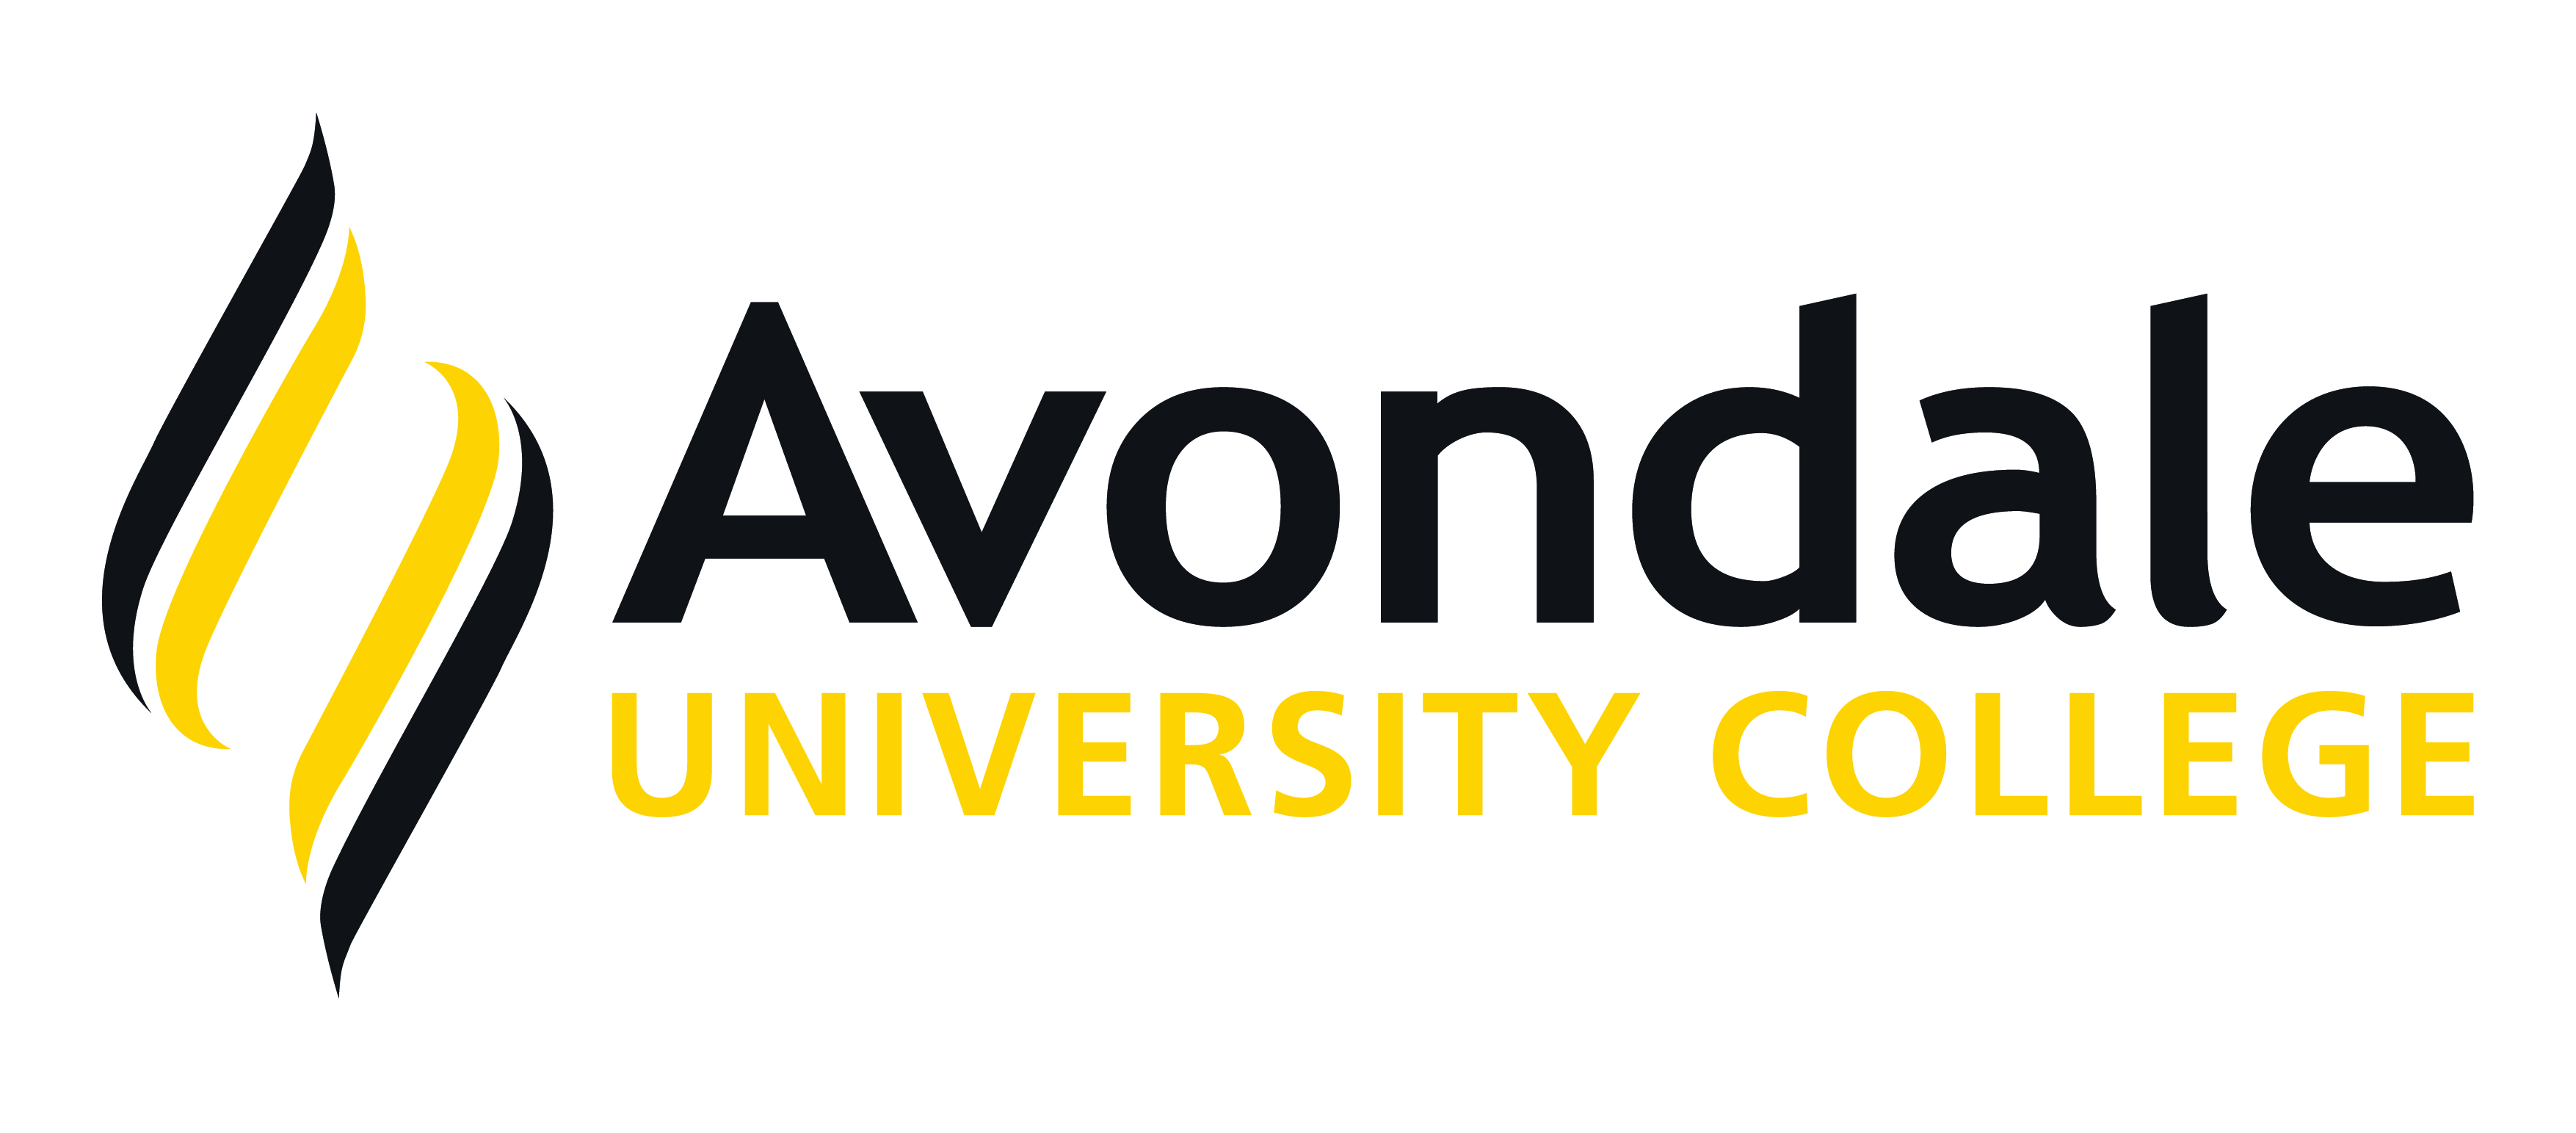 avondale_logo_full_wide_whiteblack.jpg